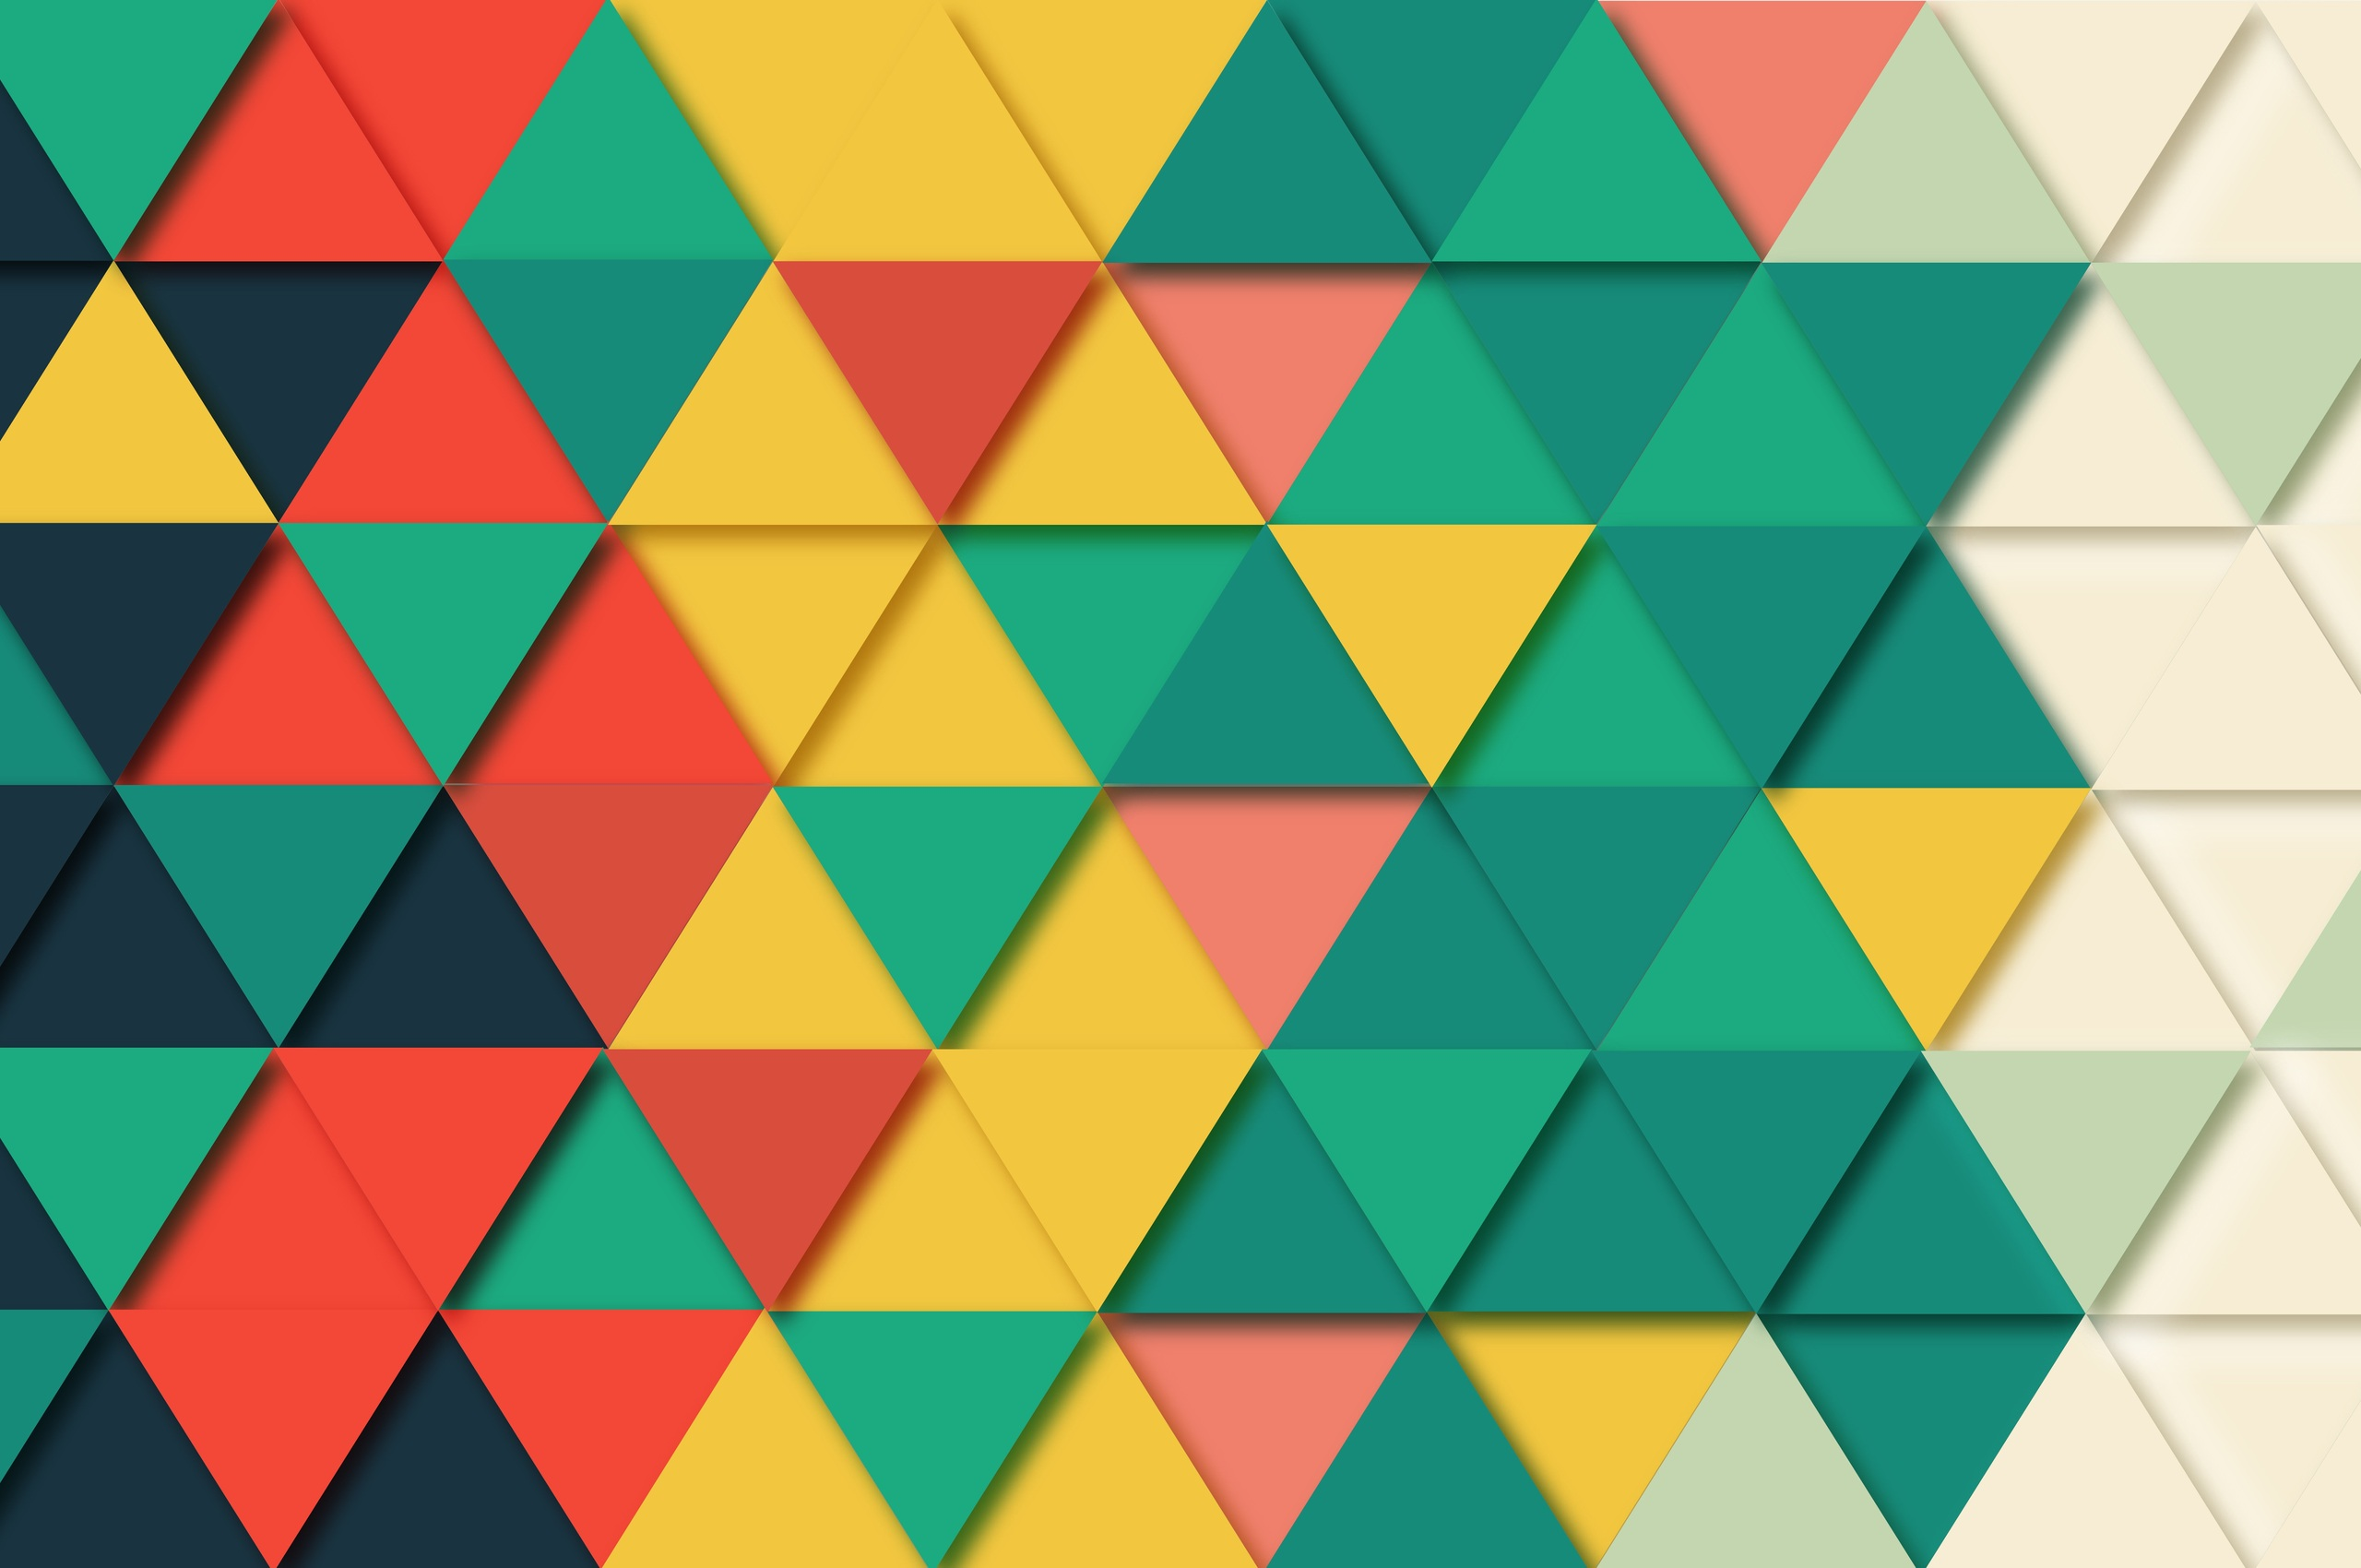 background-geometric-triangle-pattern-3n.jpg